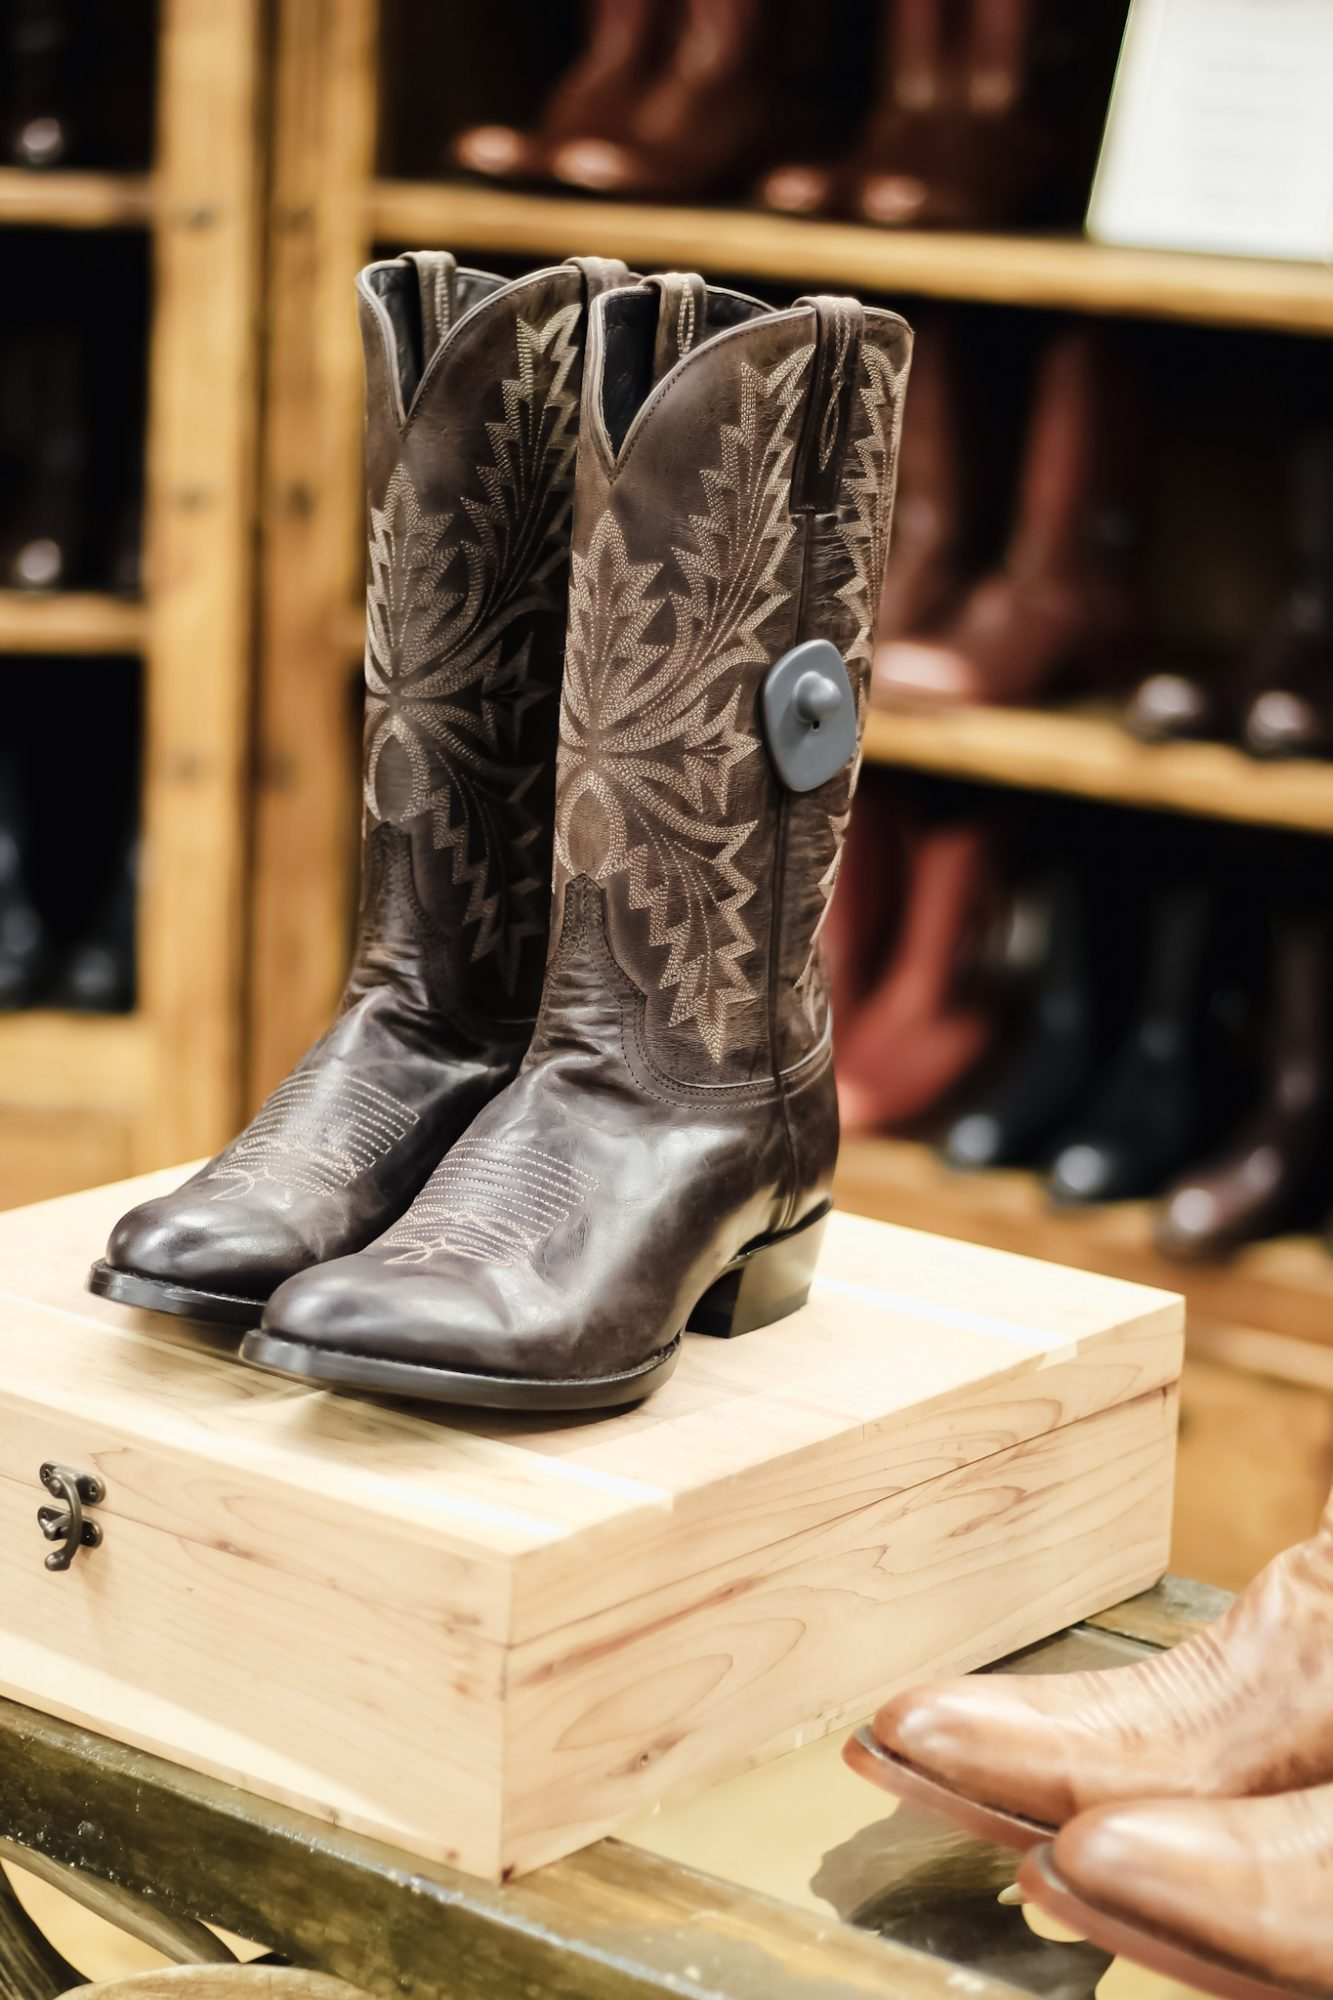 Shop at local Allens Boots in Austin